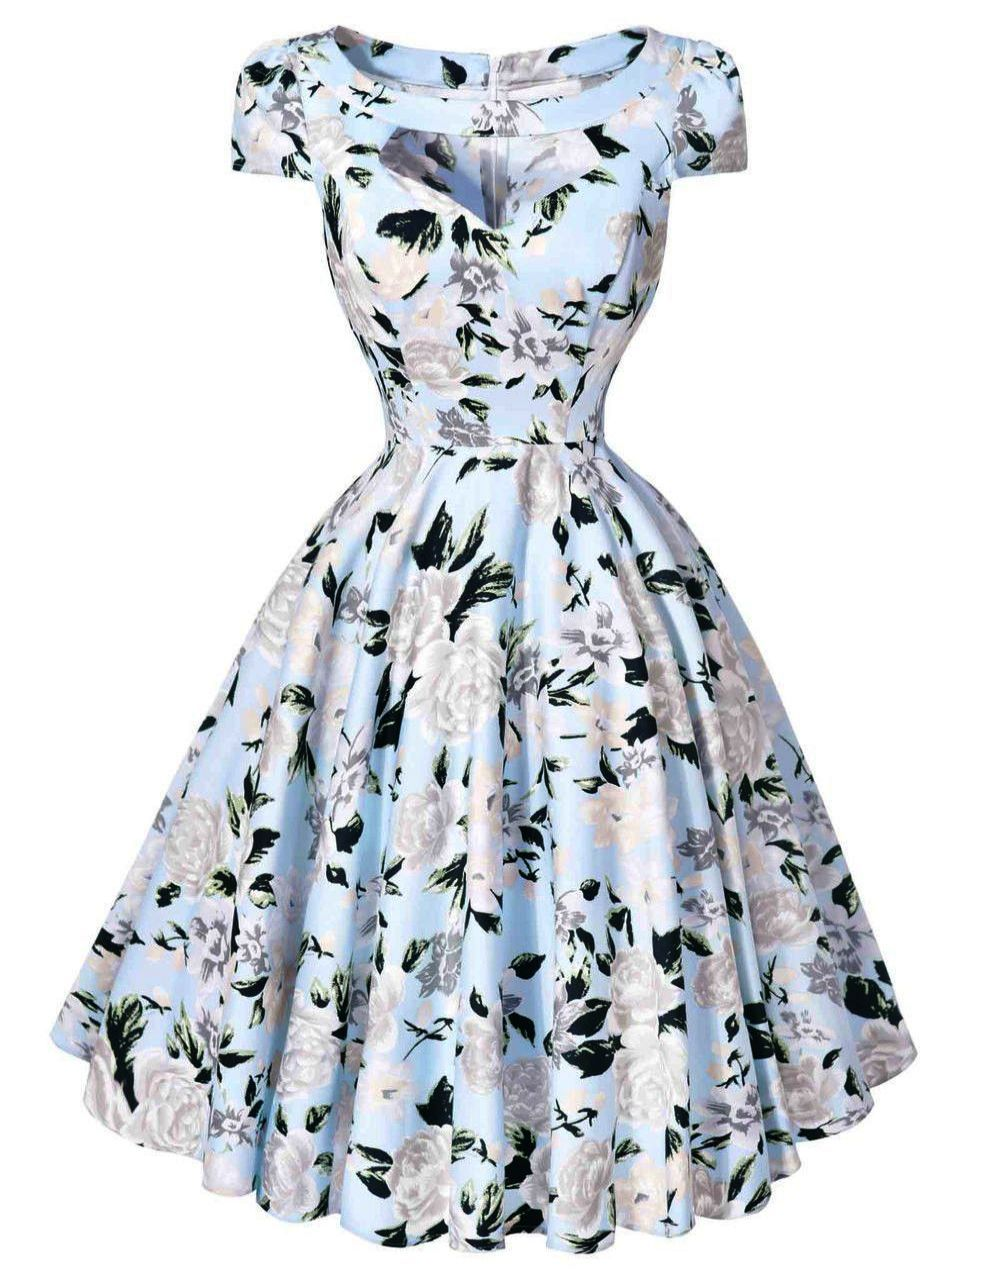 Vintage Dress England us Style Dress Costume Her Style Ideas in